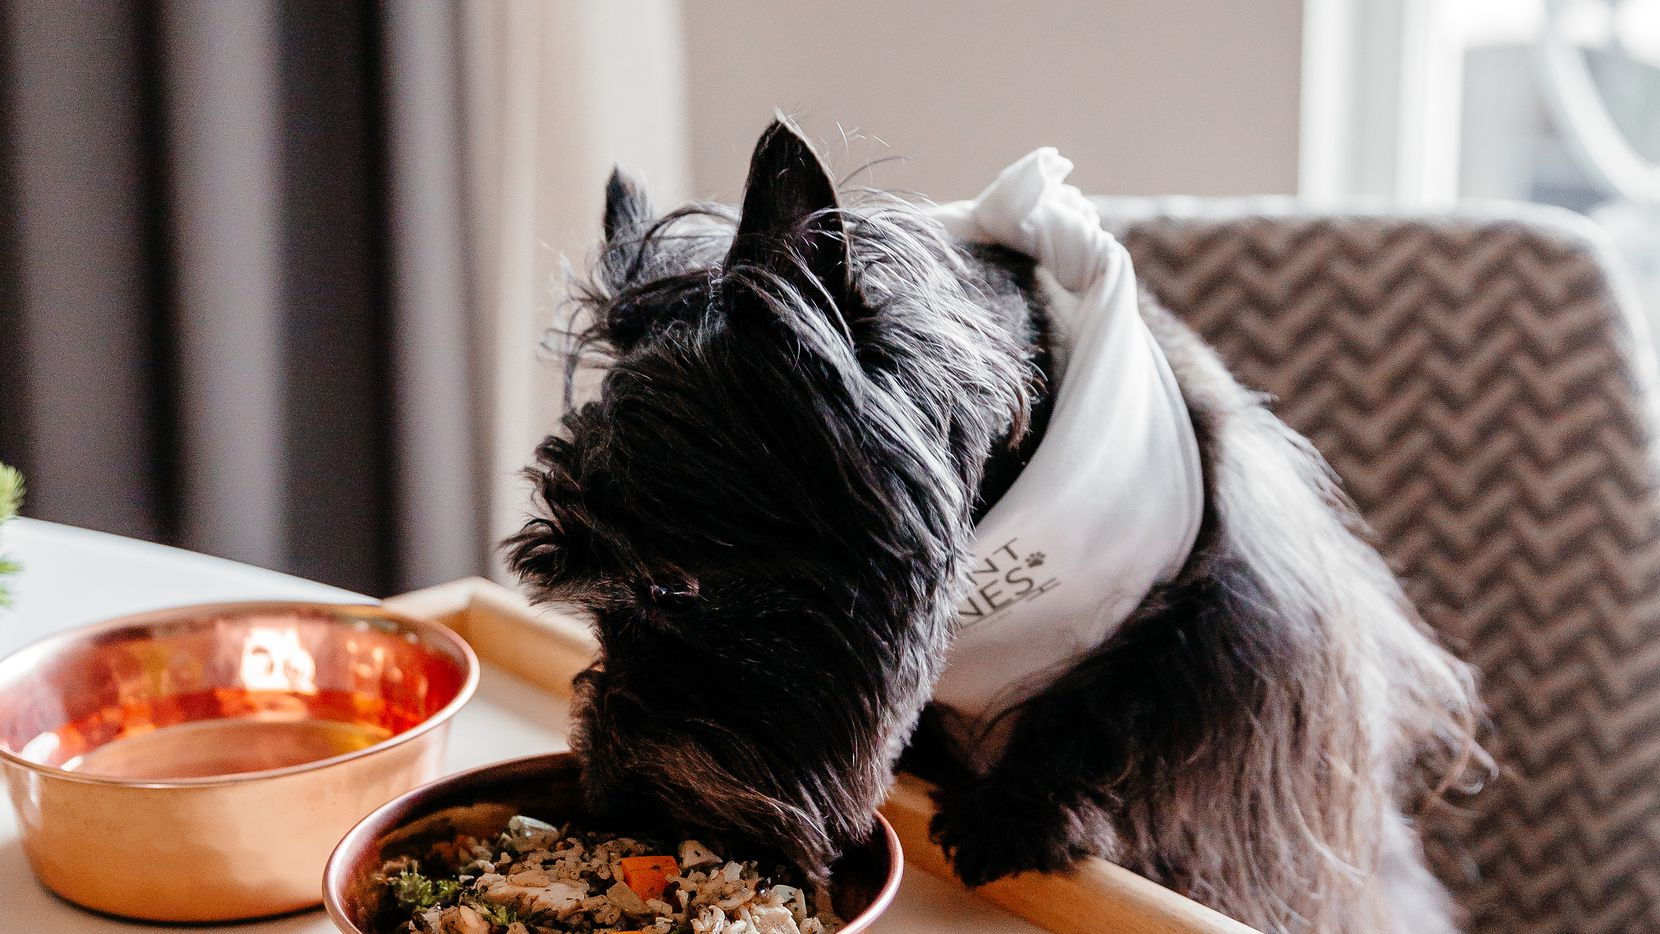 Hotel Crescent Court's pet amenity program includes a doggy menu and bowls.